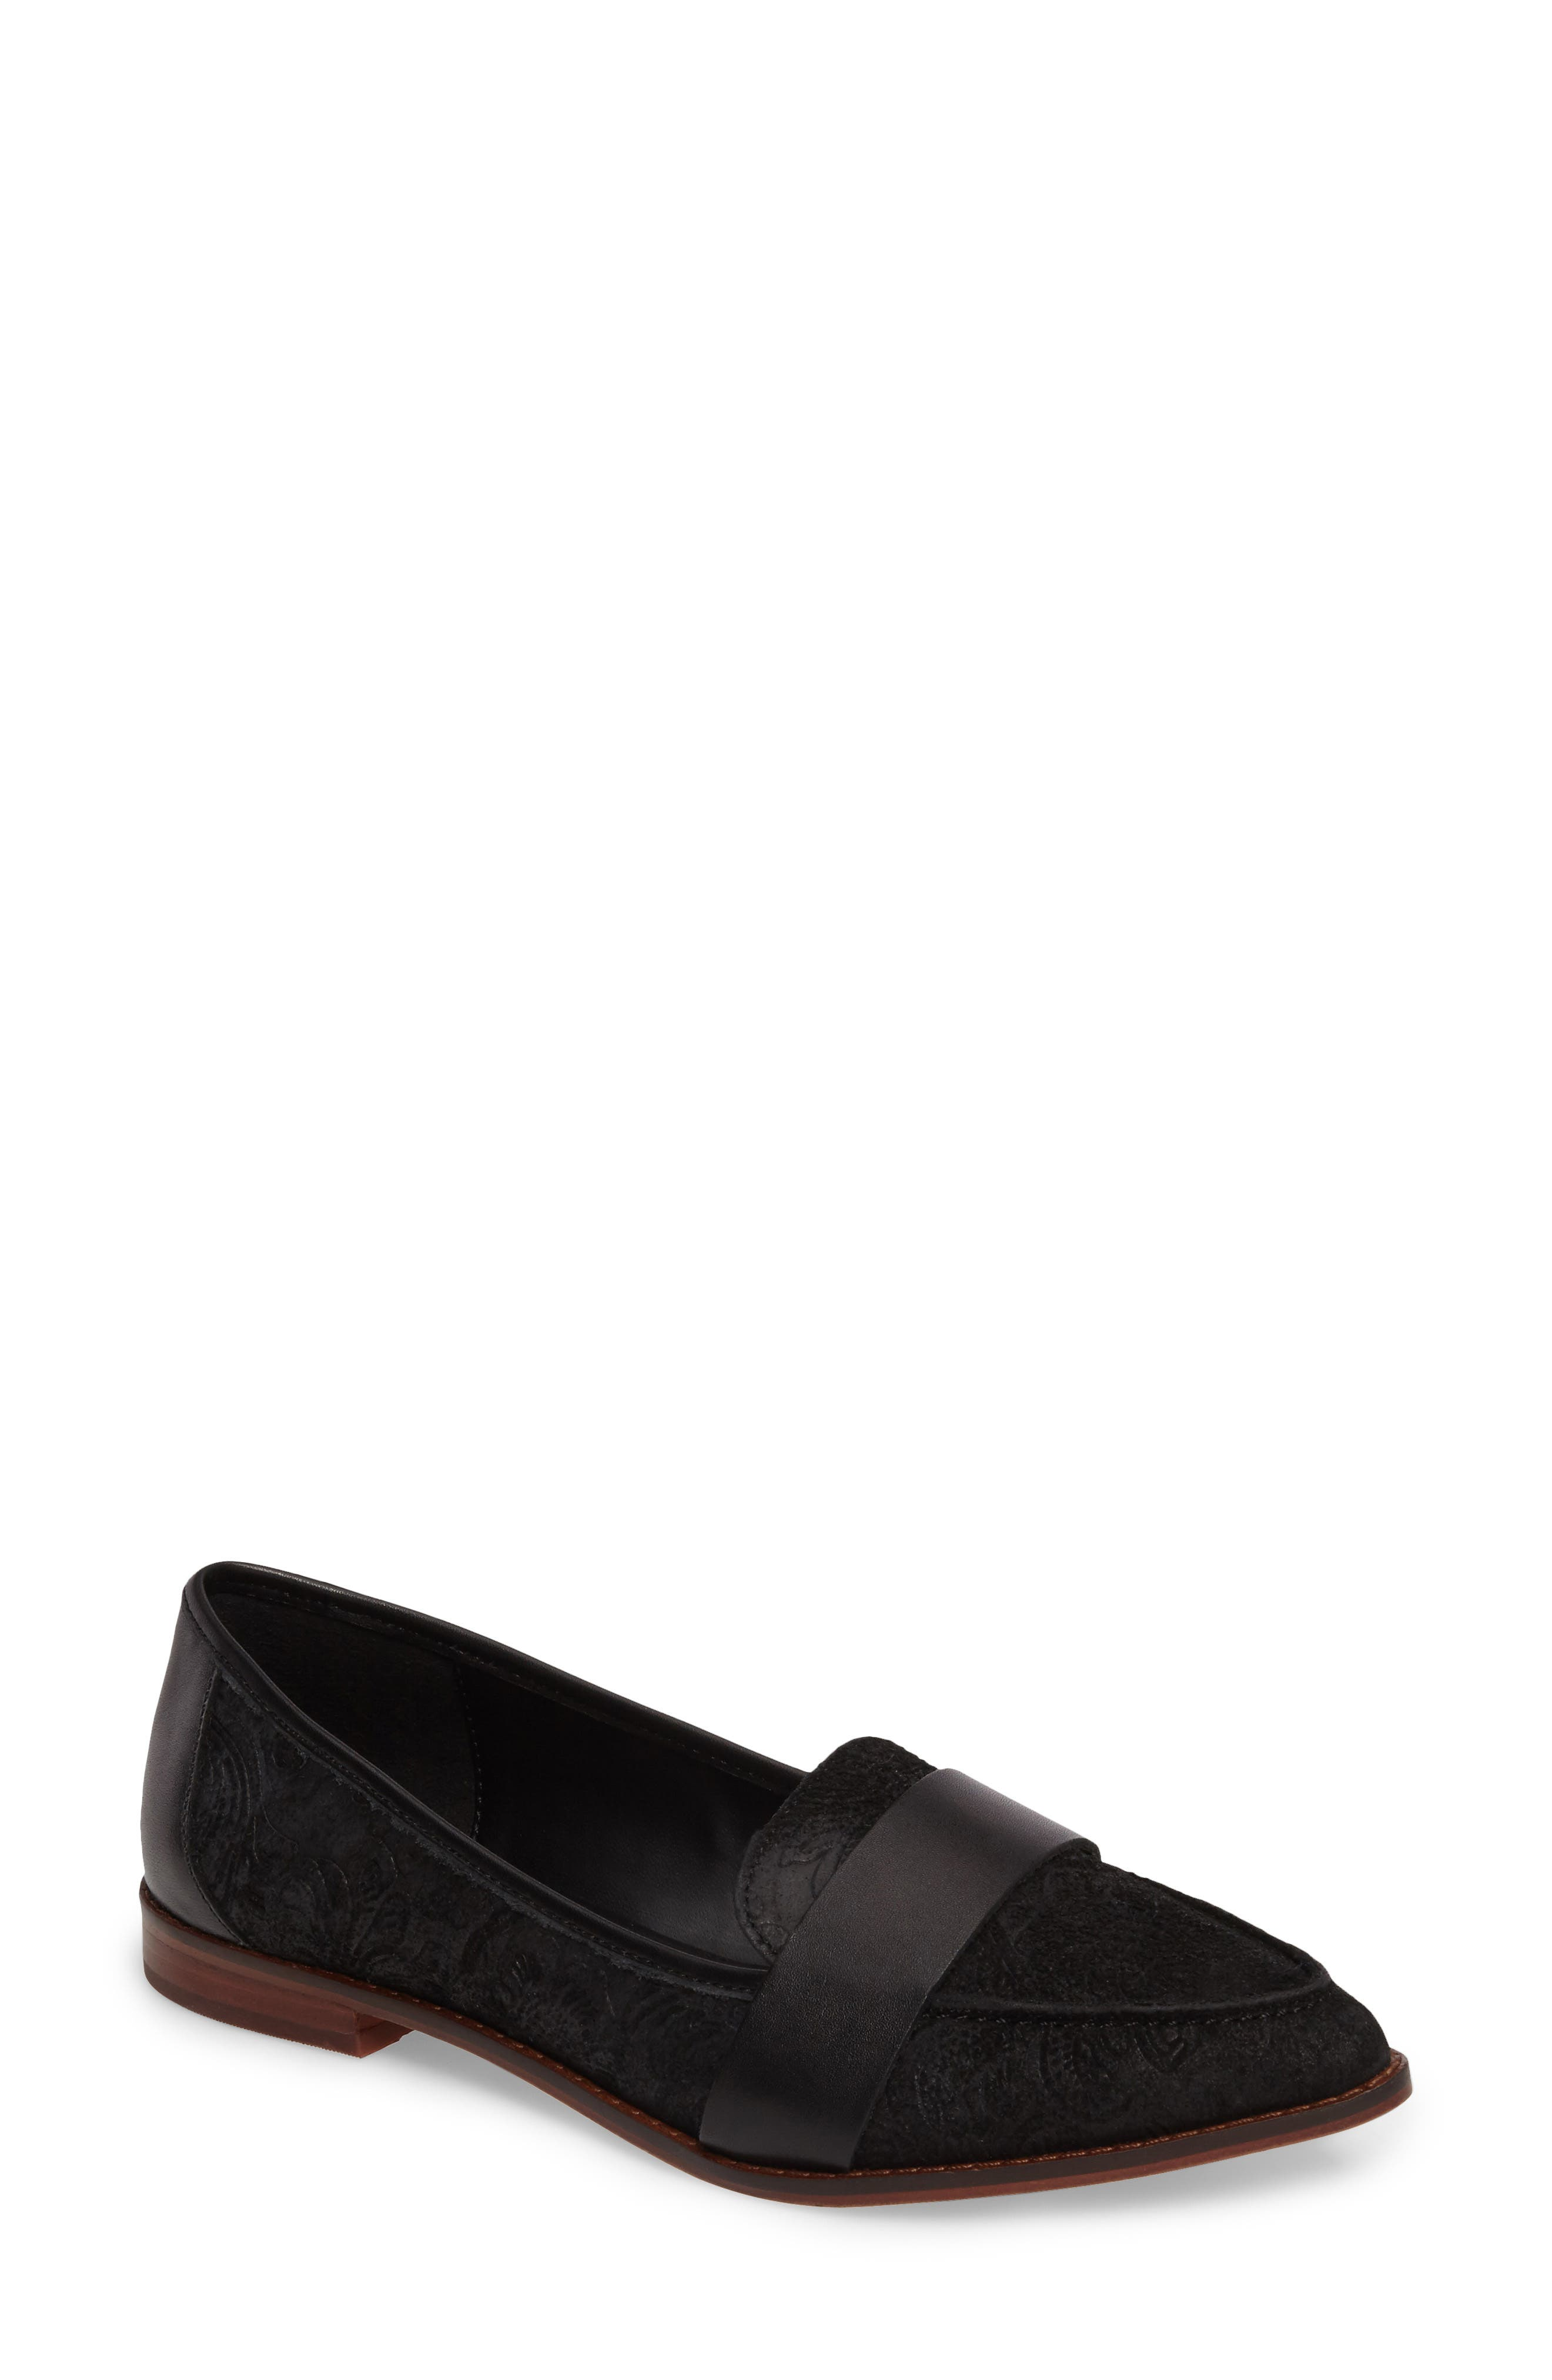 Alternate Image 1 Selected - Sole Society Edie Pointy Toe Loafer (Women)